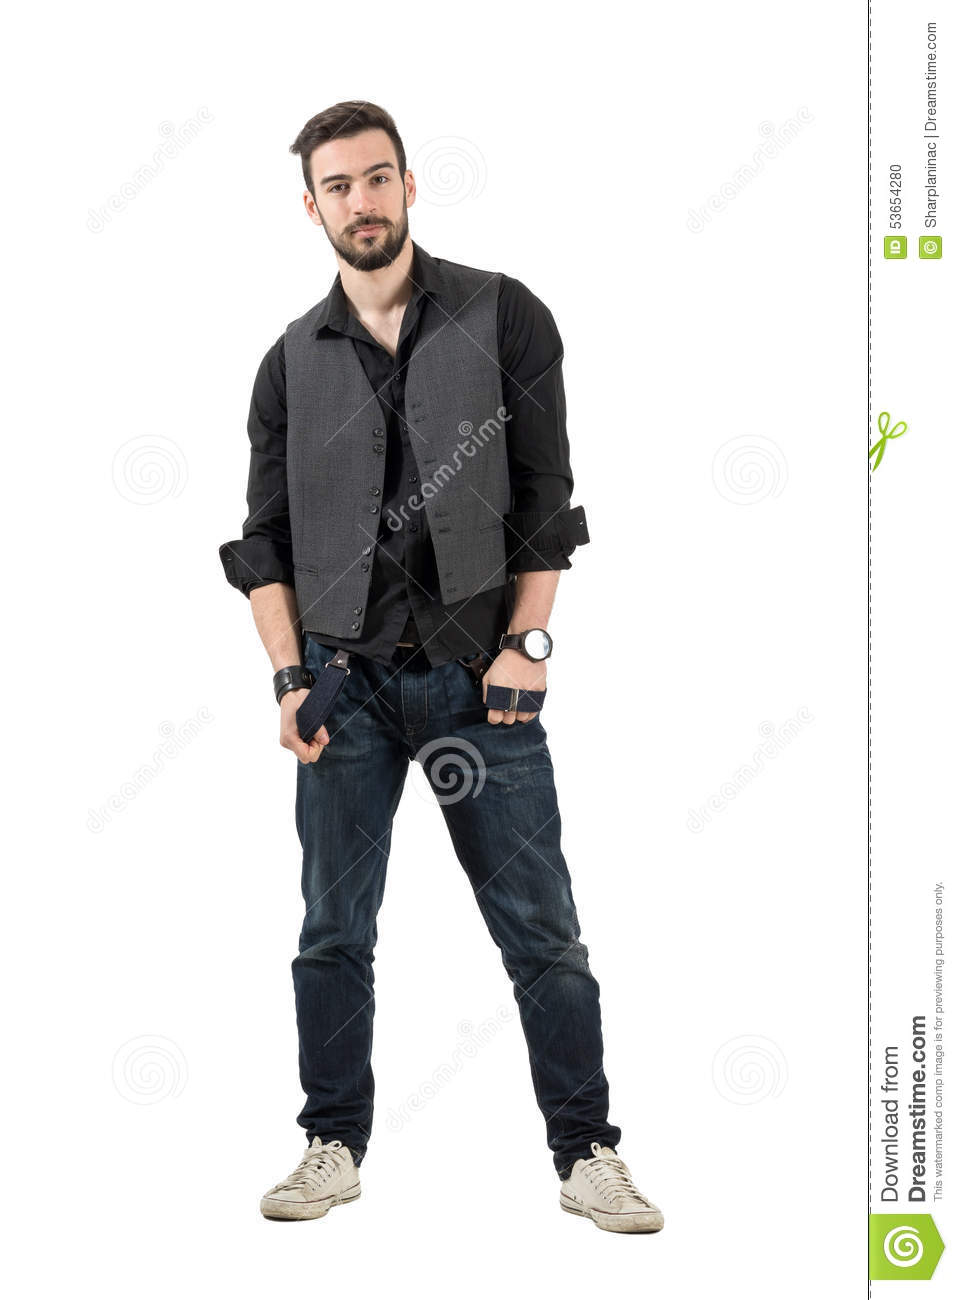 Young Male Fashion Model Holding His Suspenders Looking At Camera Stock Photo Image 53654280